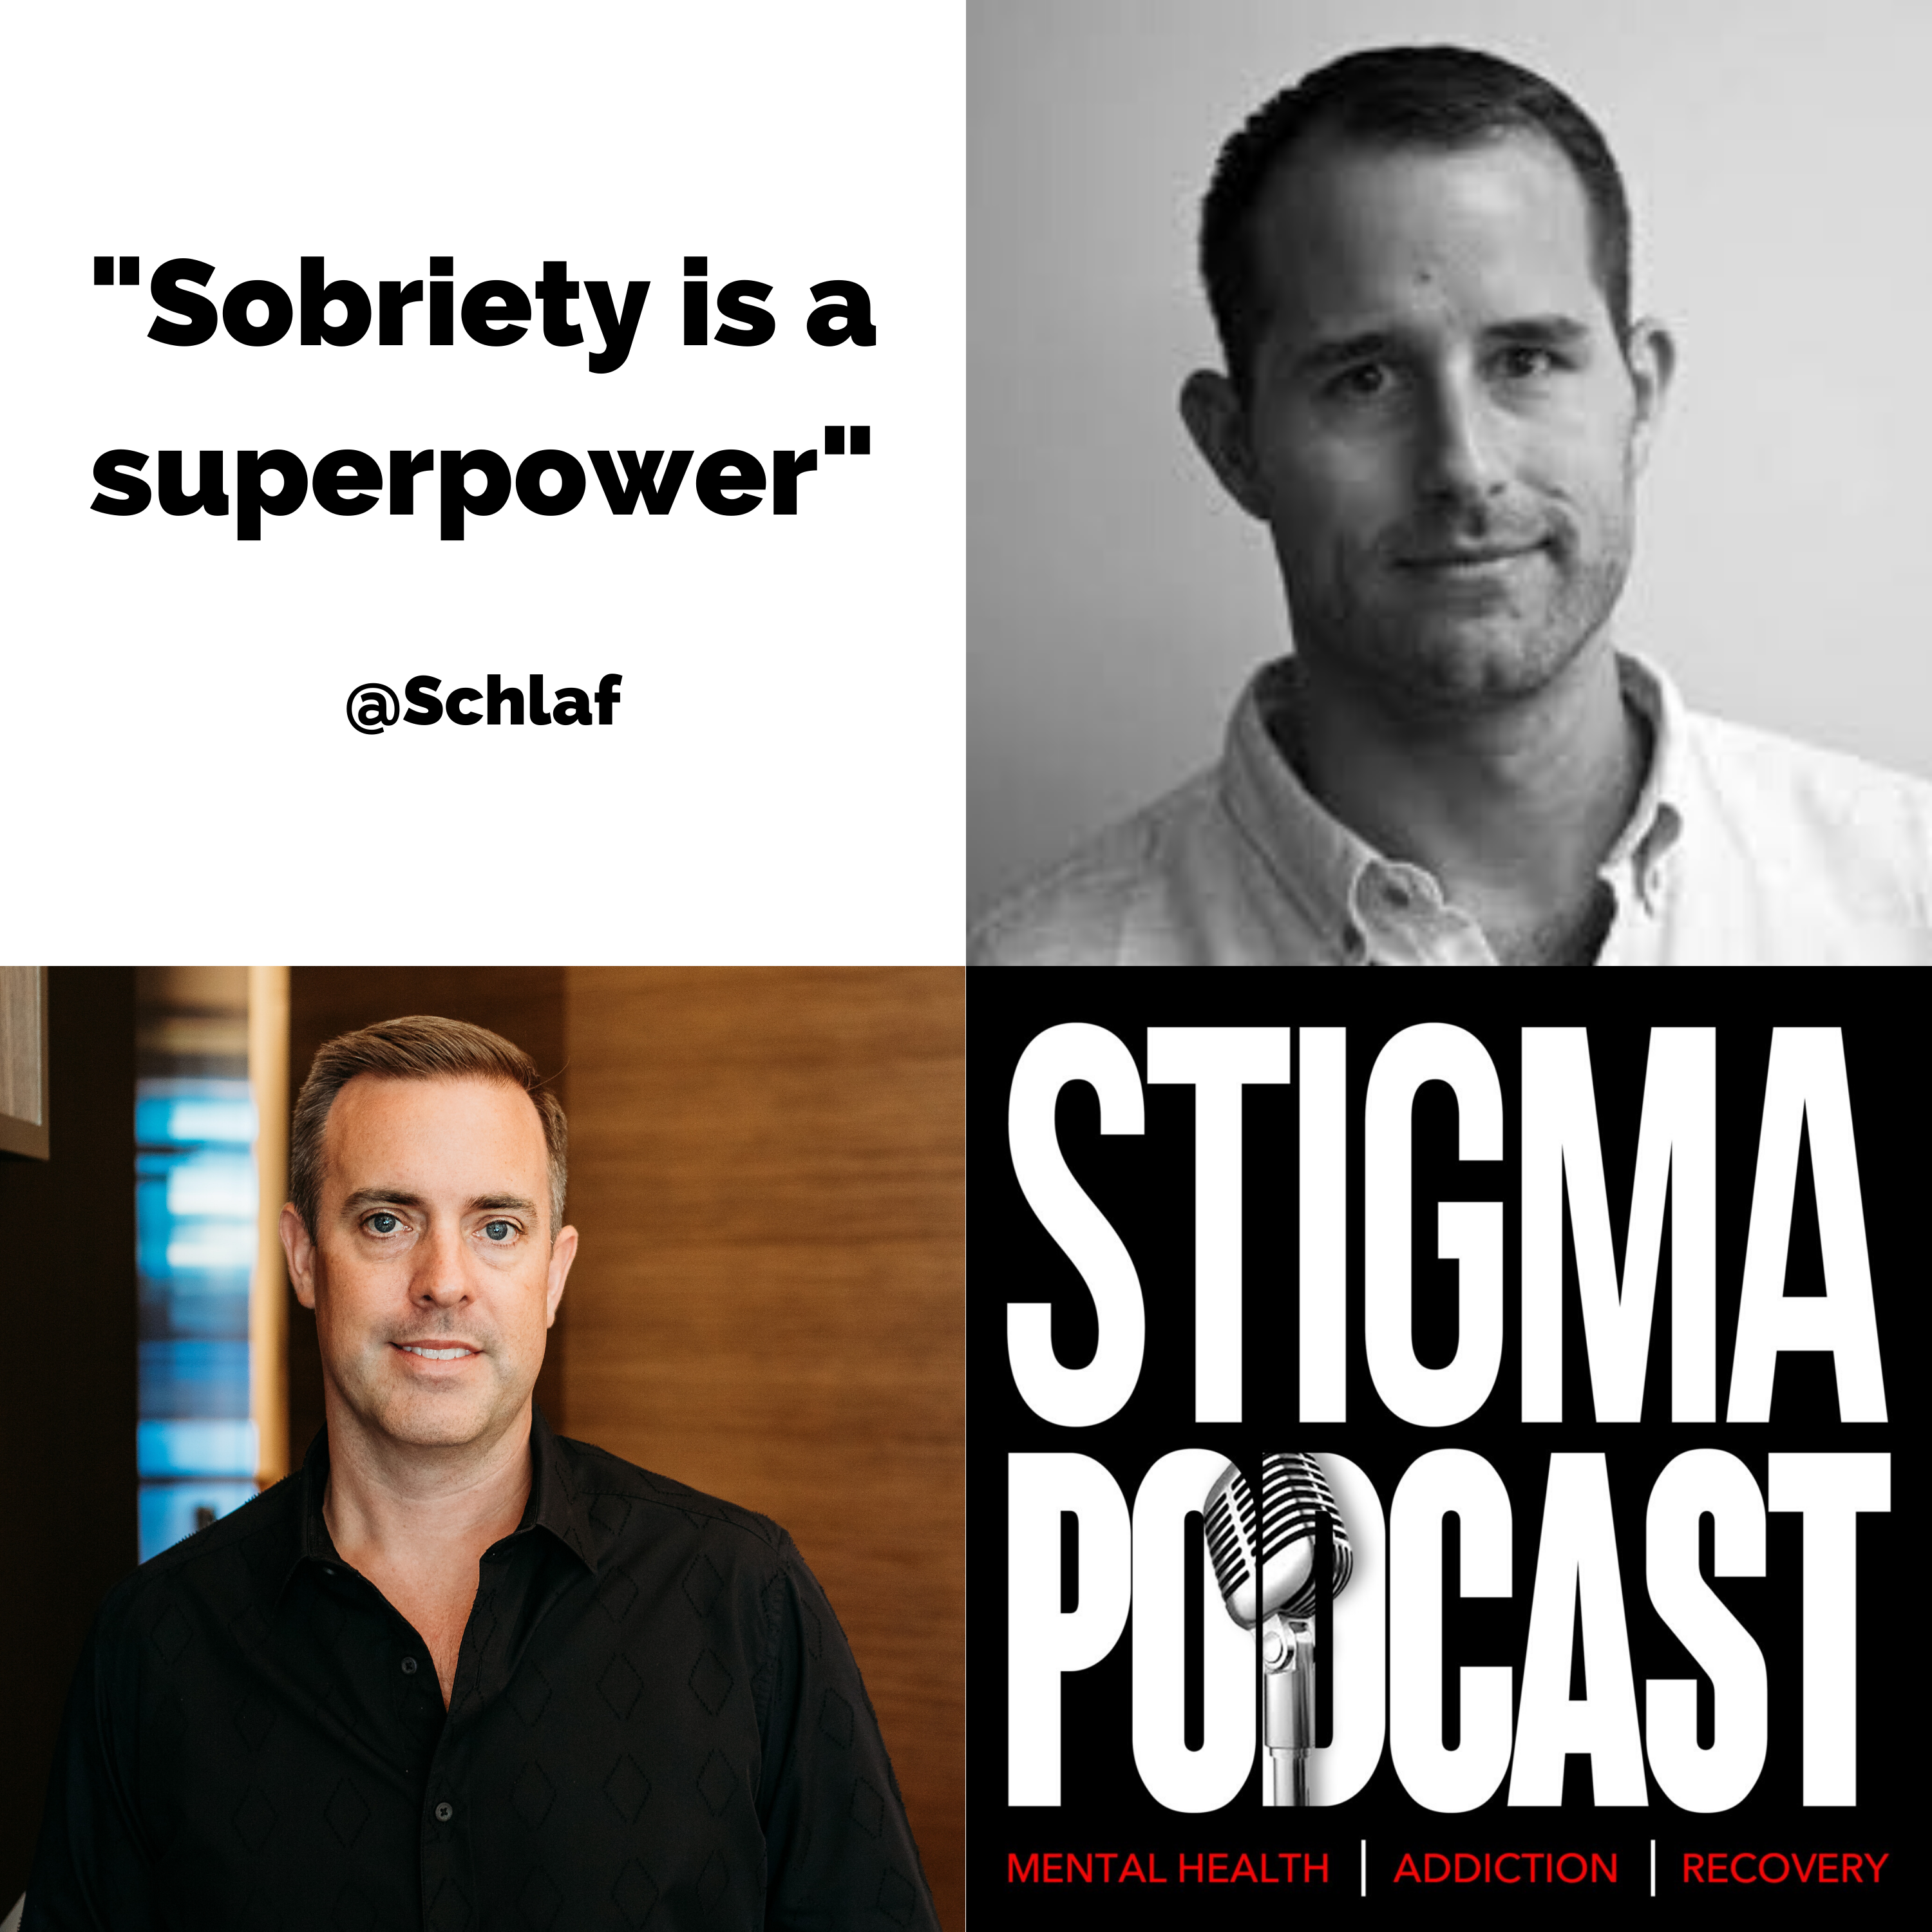 Stigma Podcast - Mental Health - #51 - Sobriety is a Superpower with Venture Capitalist Steve Schlafman